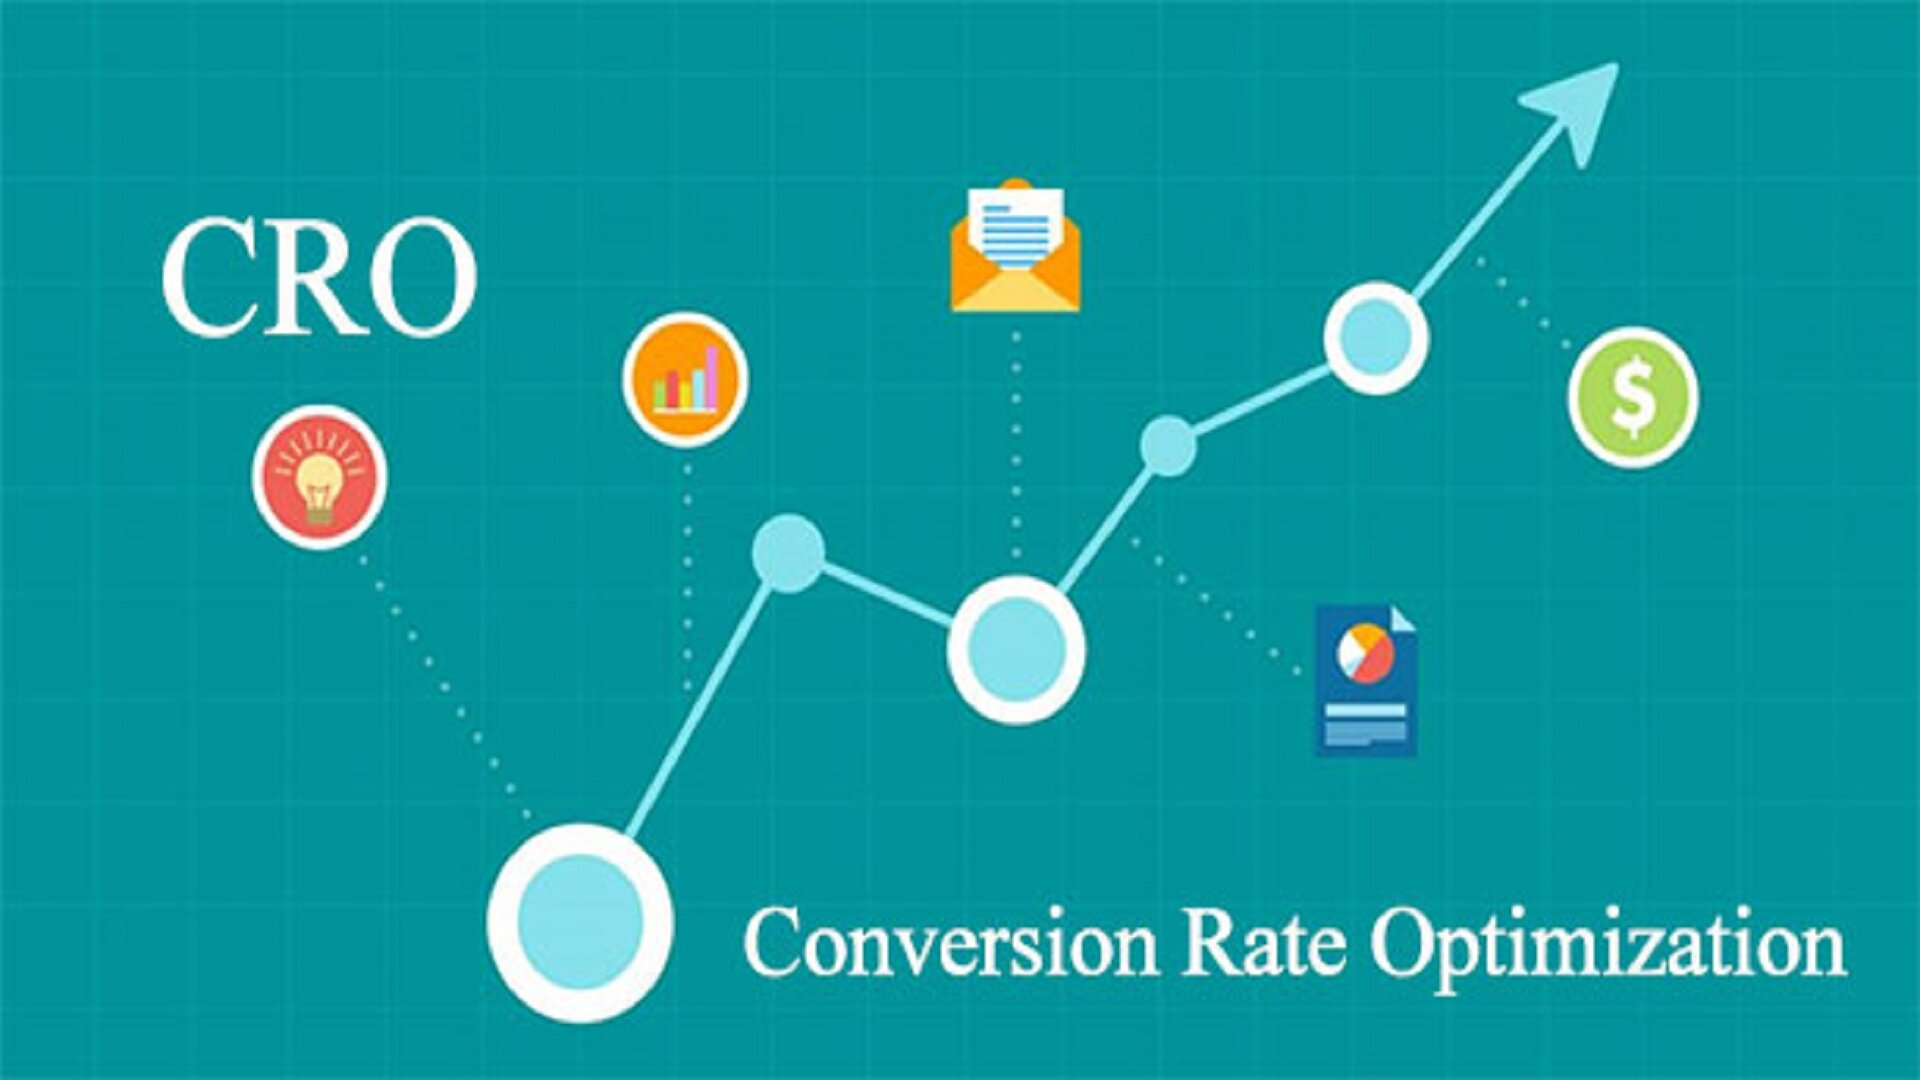 conversion rate optimization Conversion Rate Optimization